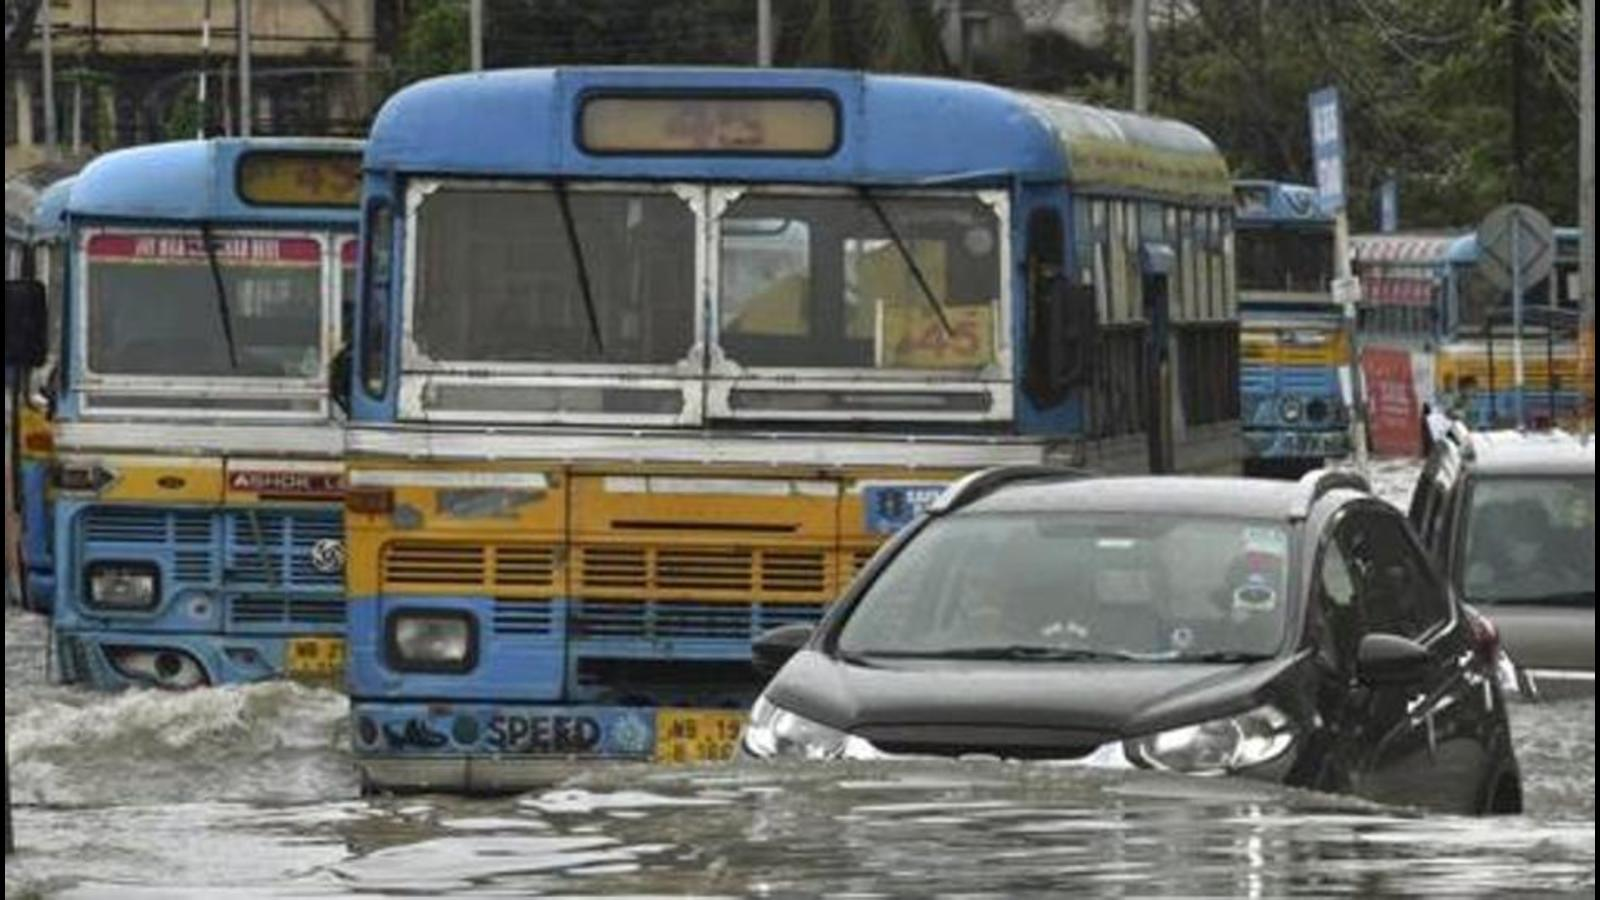 Bengal districts to receive heavy rainfall till Oct 20, says forecast